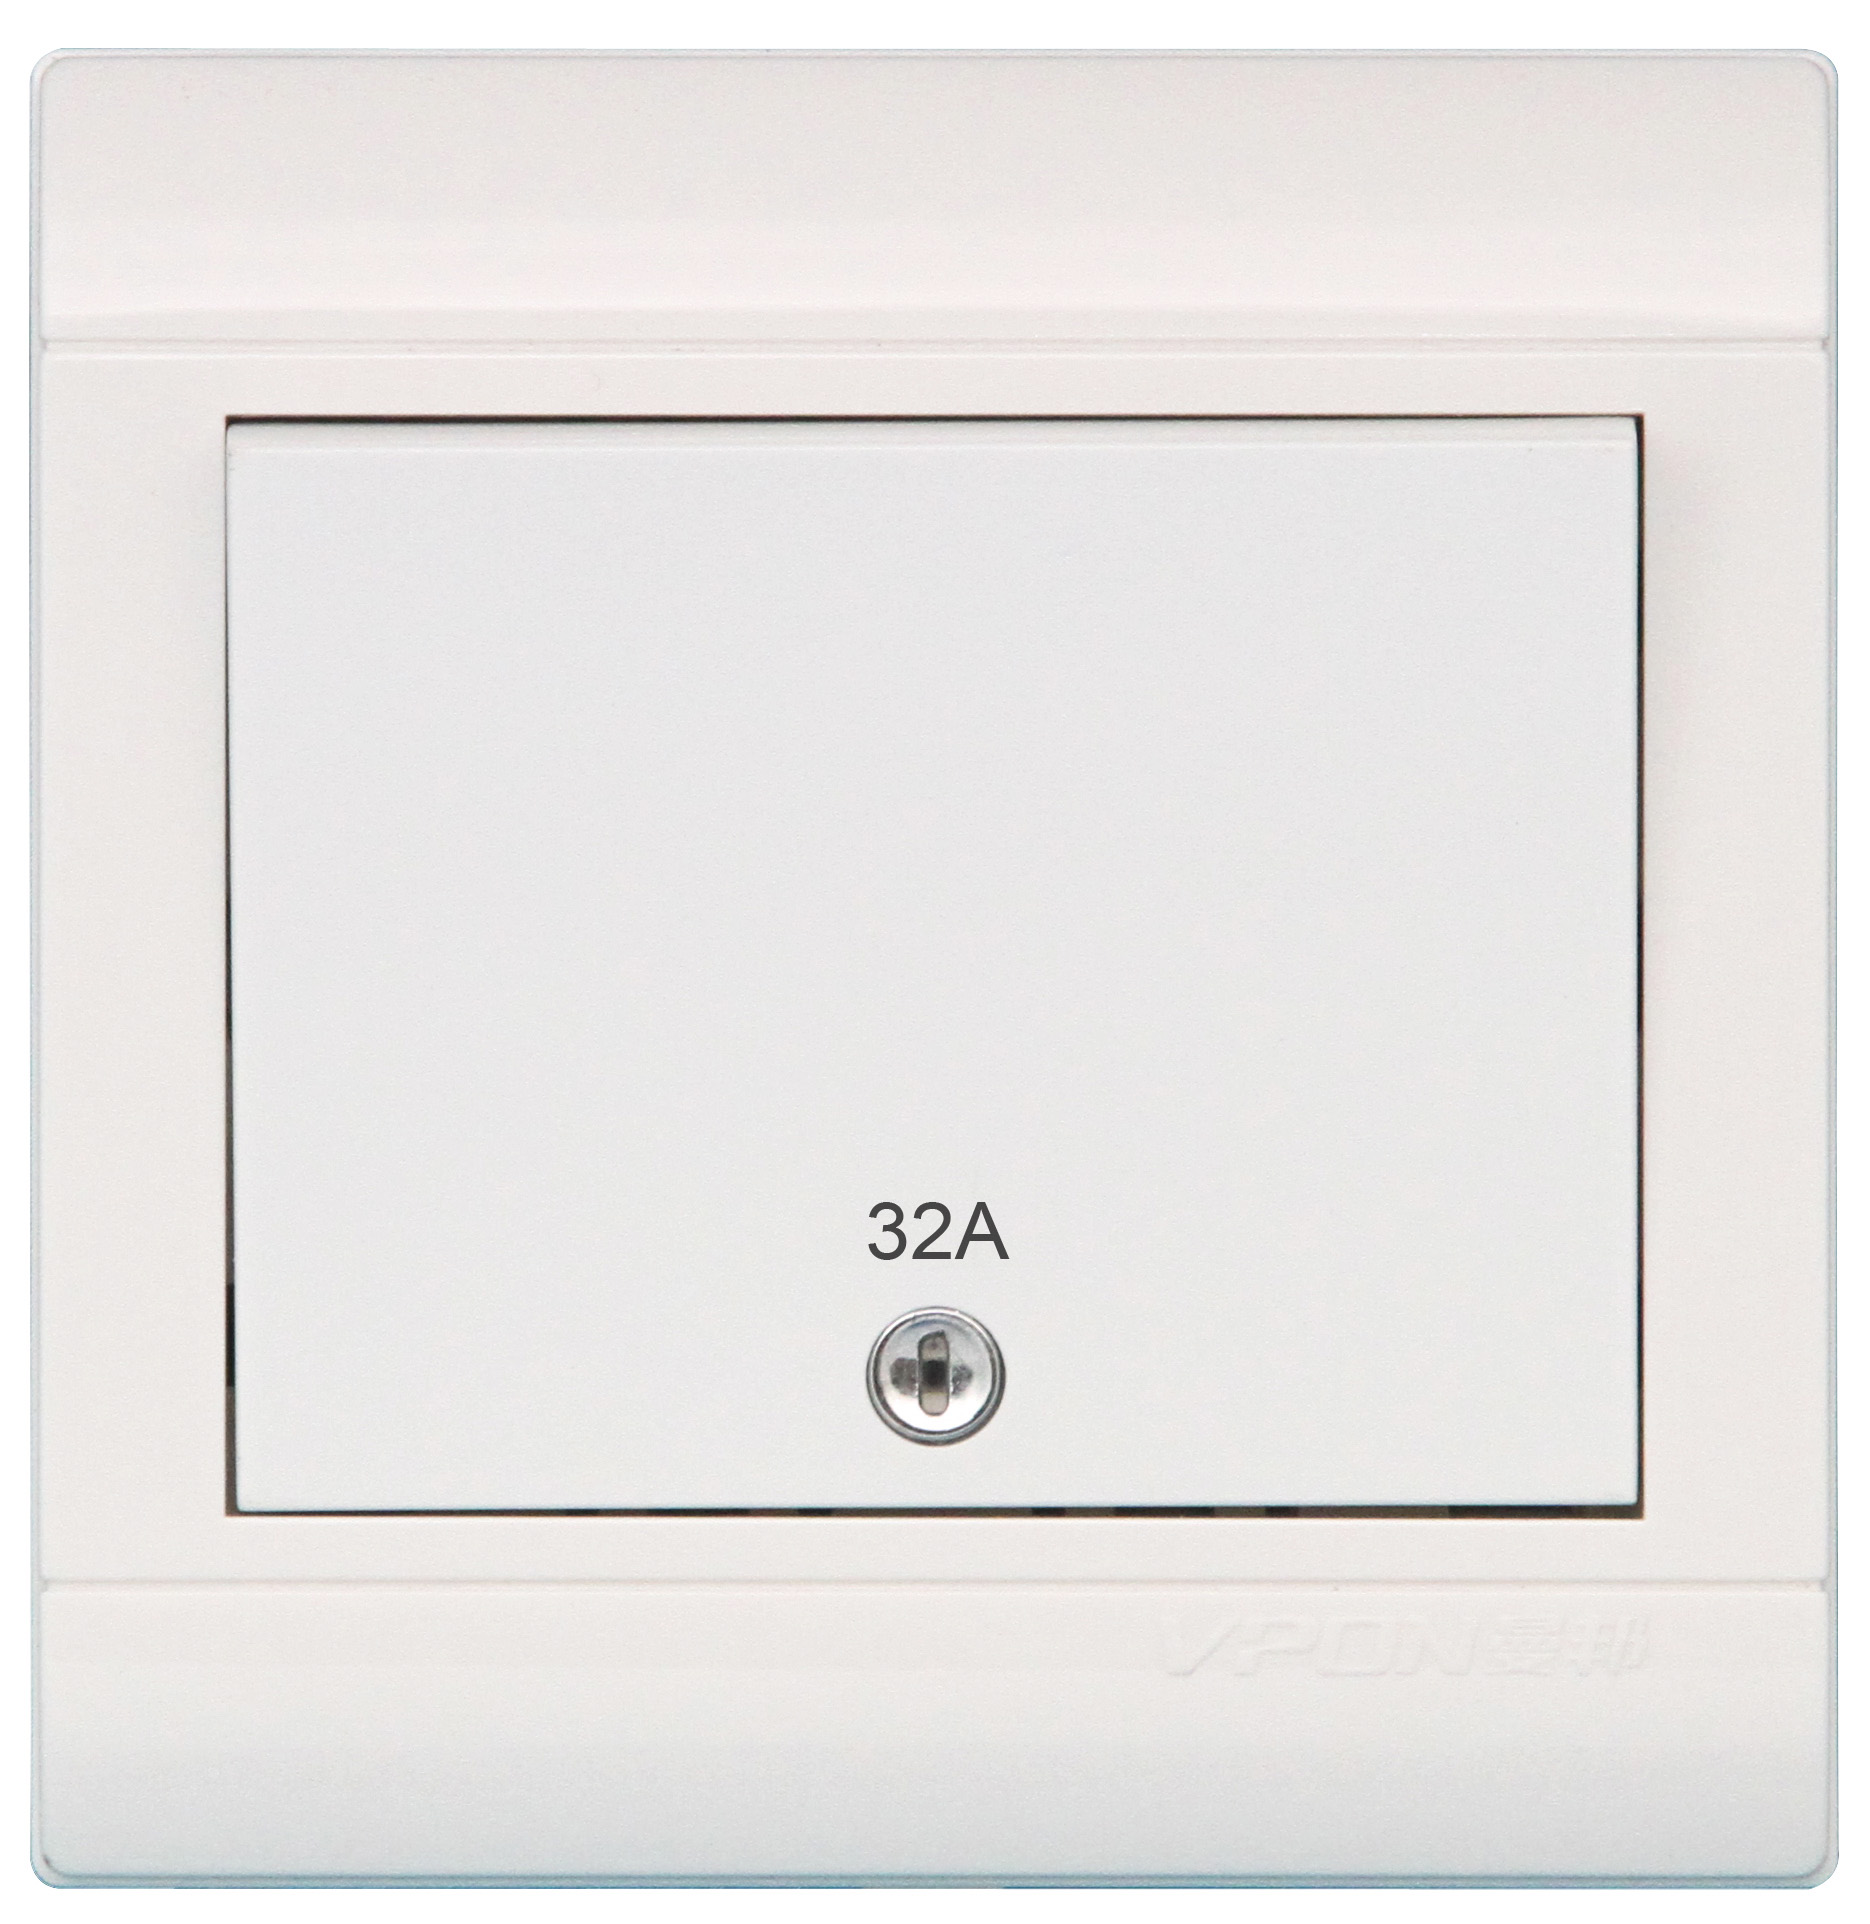 32A Double Pole switch with light